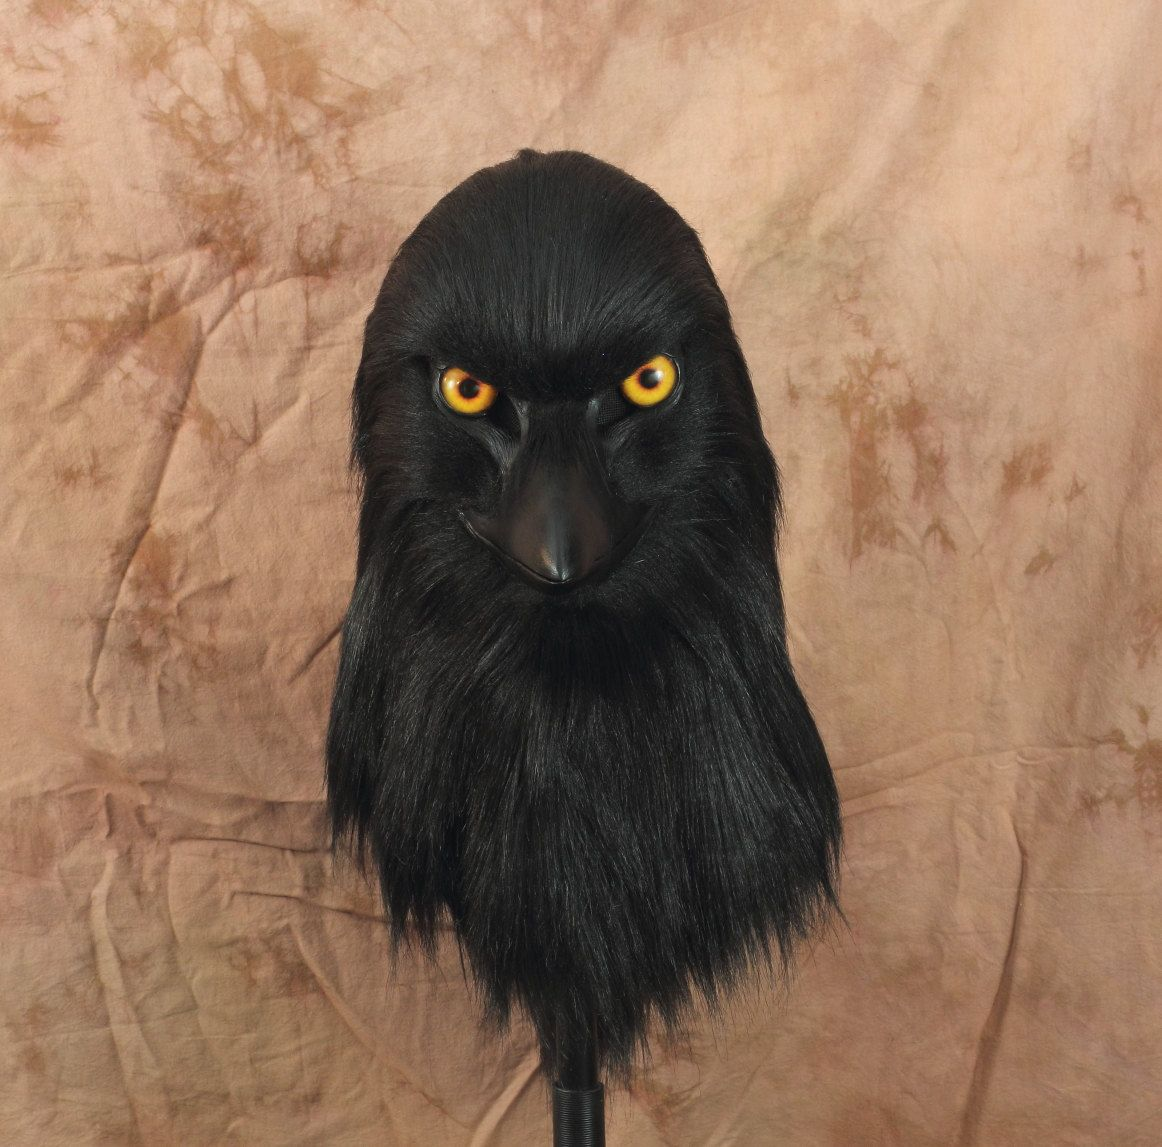 Crow Fursuit raven head realistic mask, articulated jaw, realistic ...